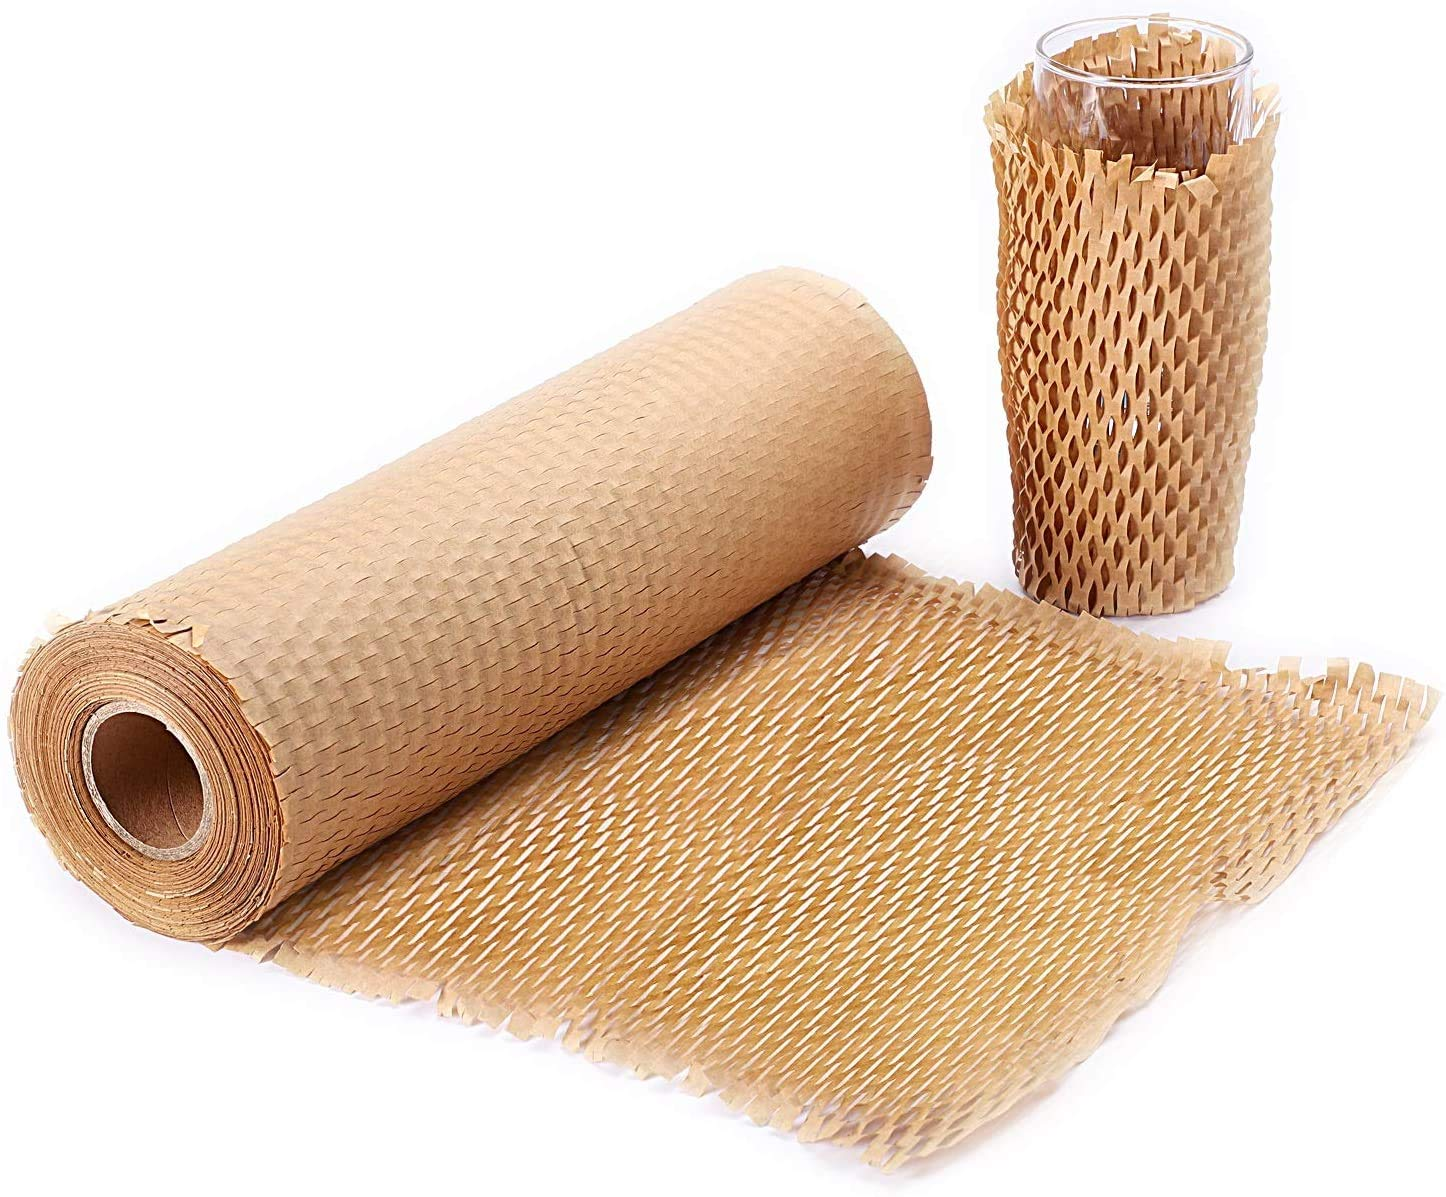 """METRONIC Packaging Paper 12""""x128' Honeycomb Cushioning Wrap Roll Perforated-Packing,1 Rolls 128 Ft Honeycomb Wrap Roll with 20 Fragile Sticker Labels, Honeycomb Wrap Roll for Packing & Moving"""